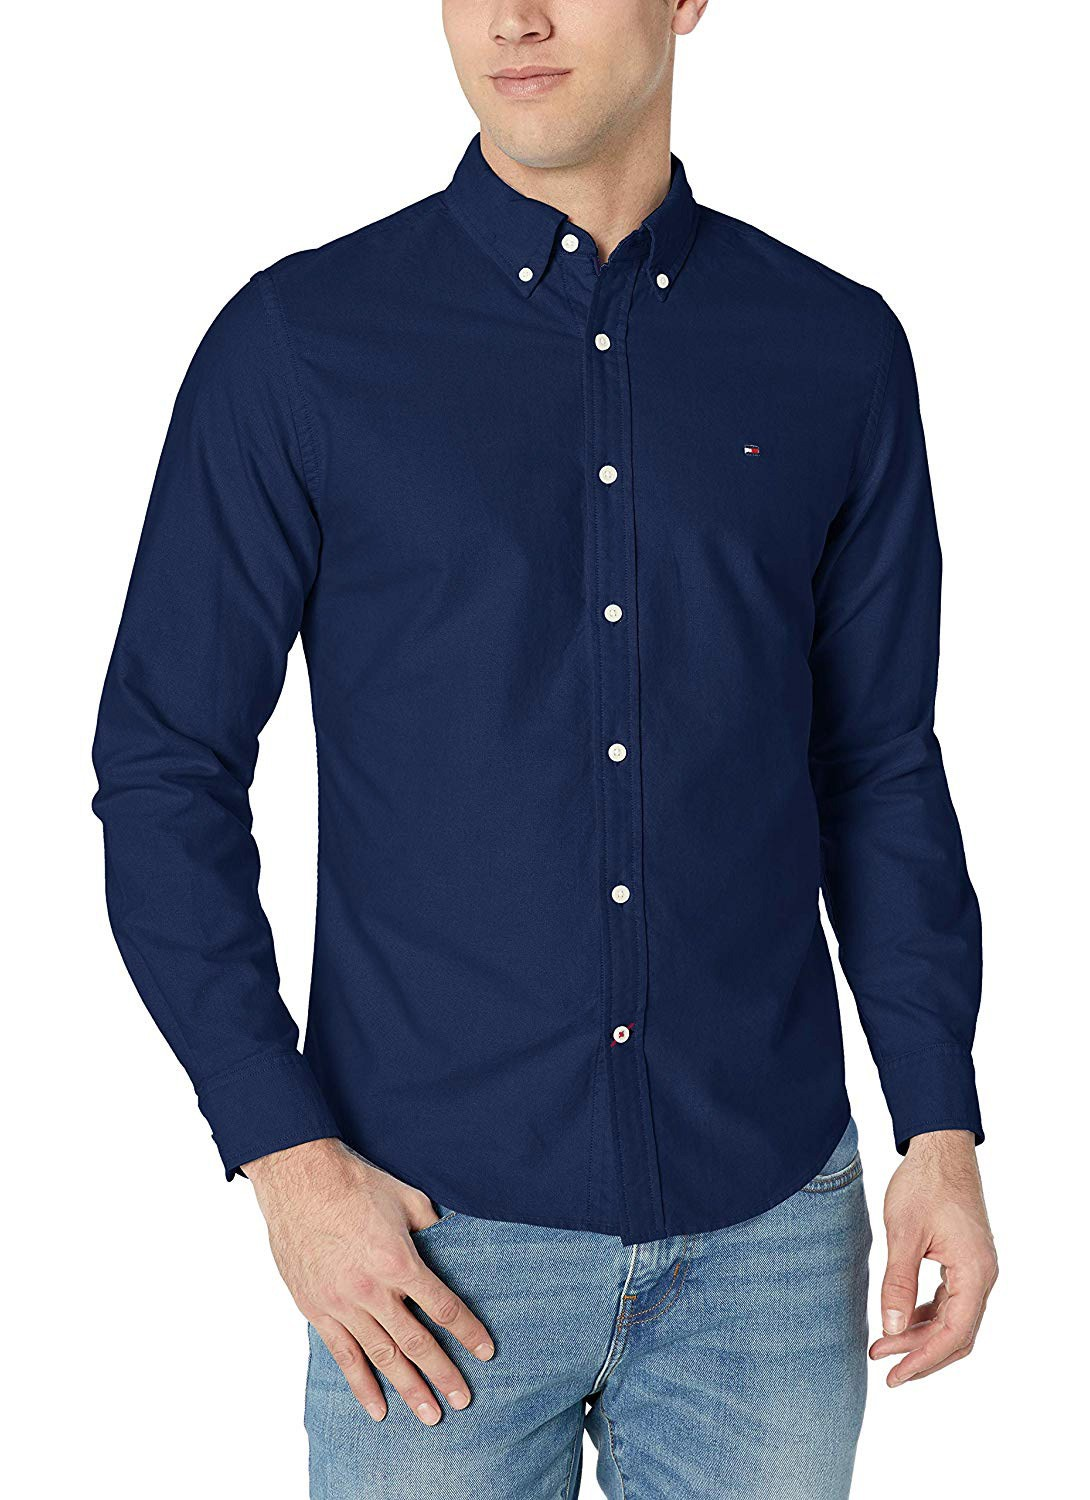 Camisa Tommy Hilfiger Masculina Regular Fit Cotton Oxford Azul Marinho